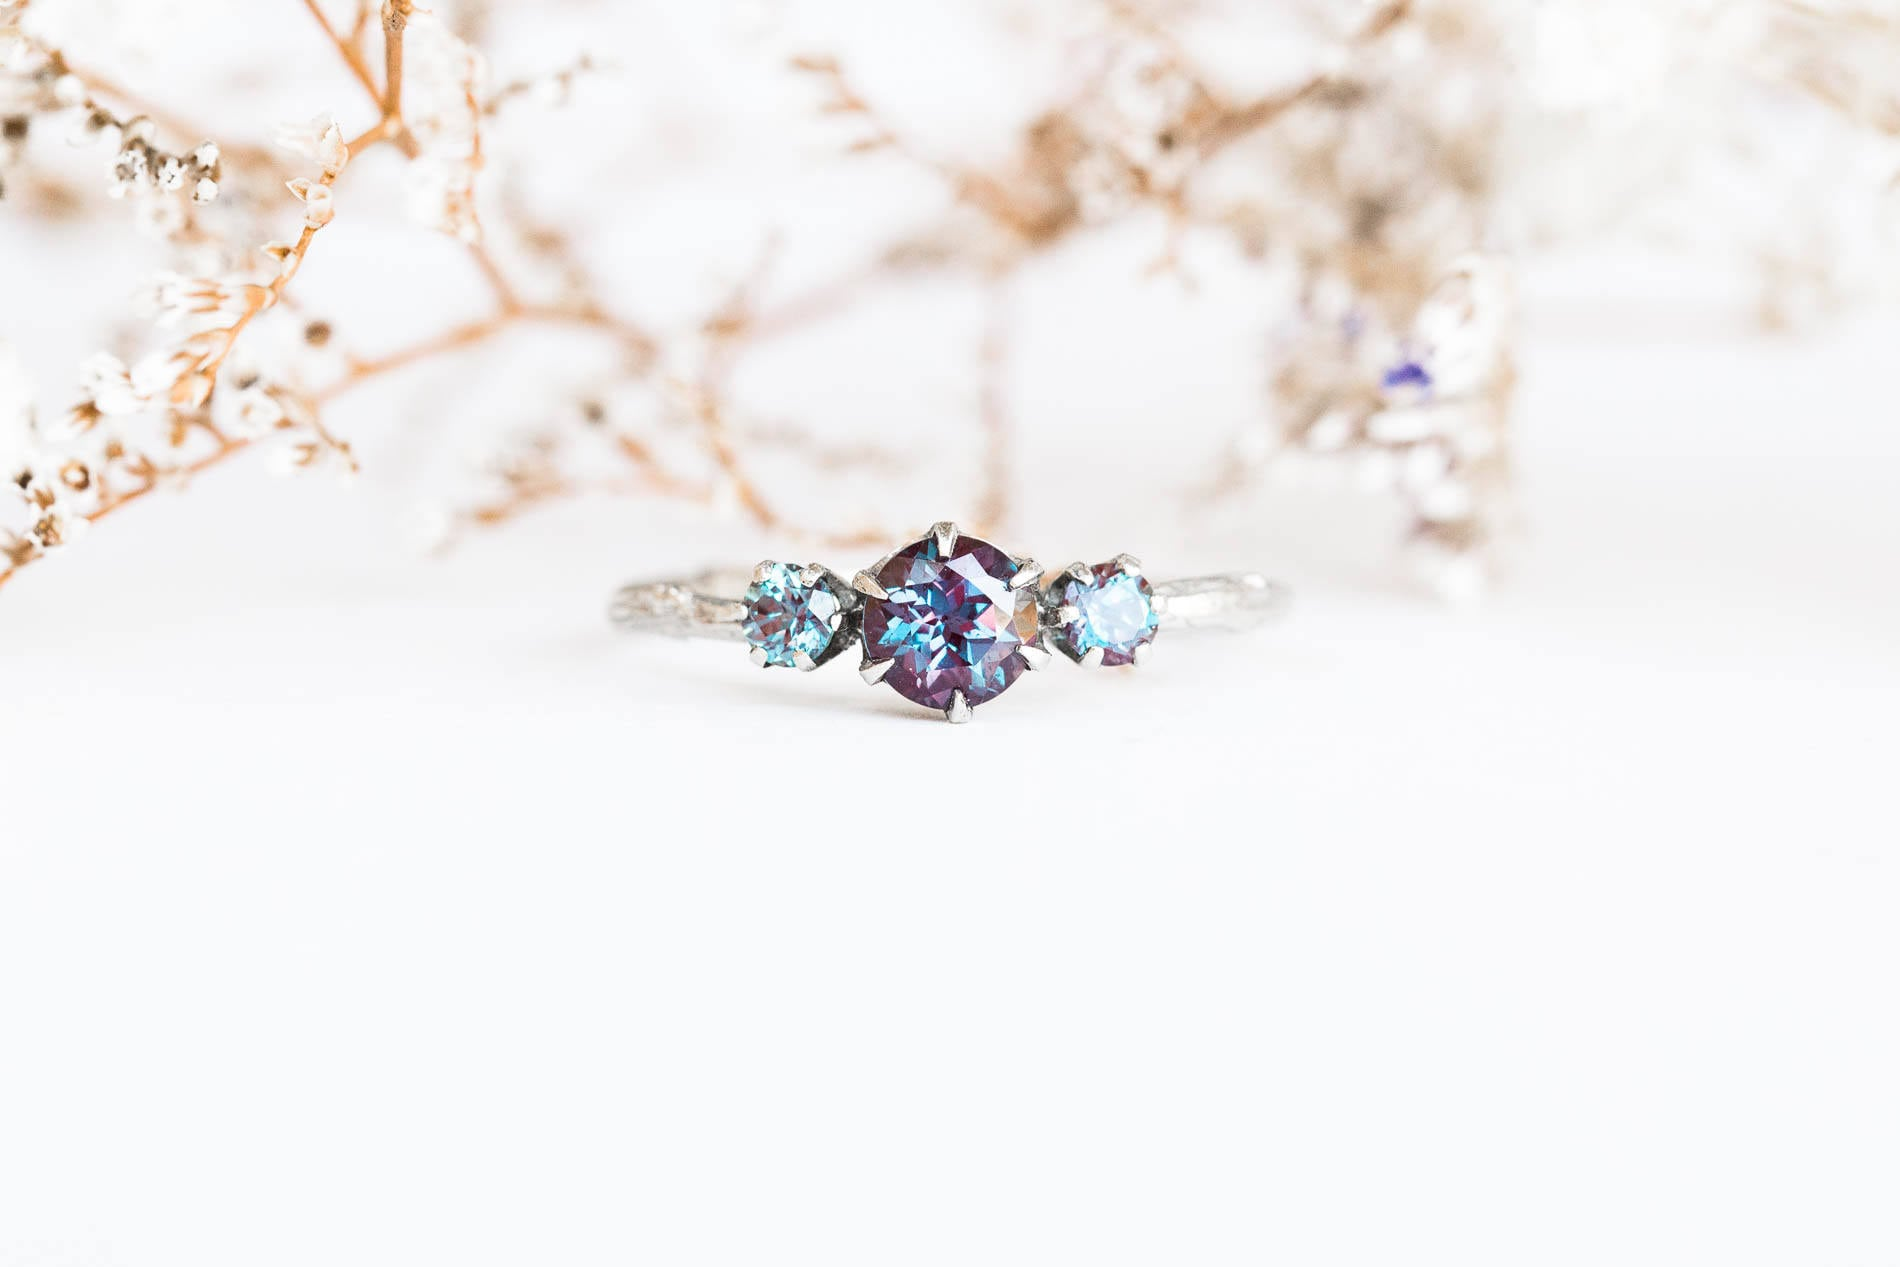 pid alexandrite diamond rings a ring gold preset and engagement w ax butterfly